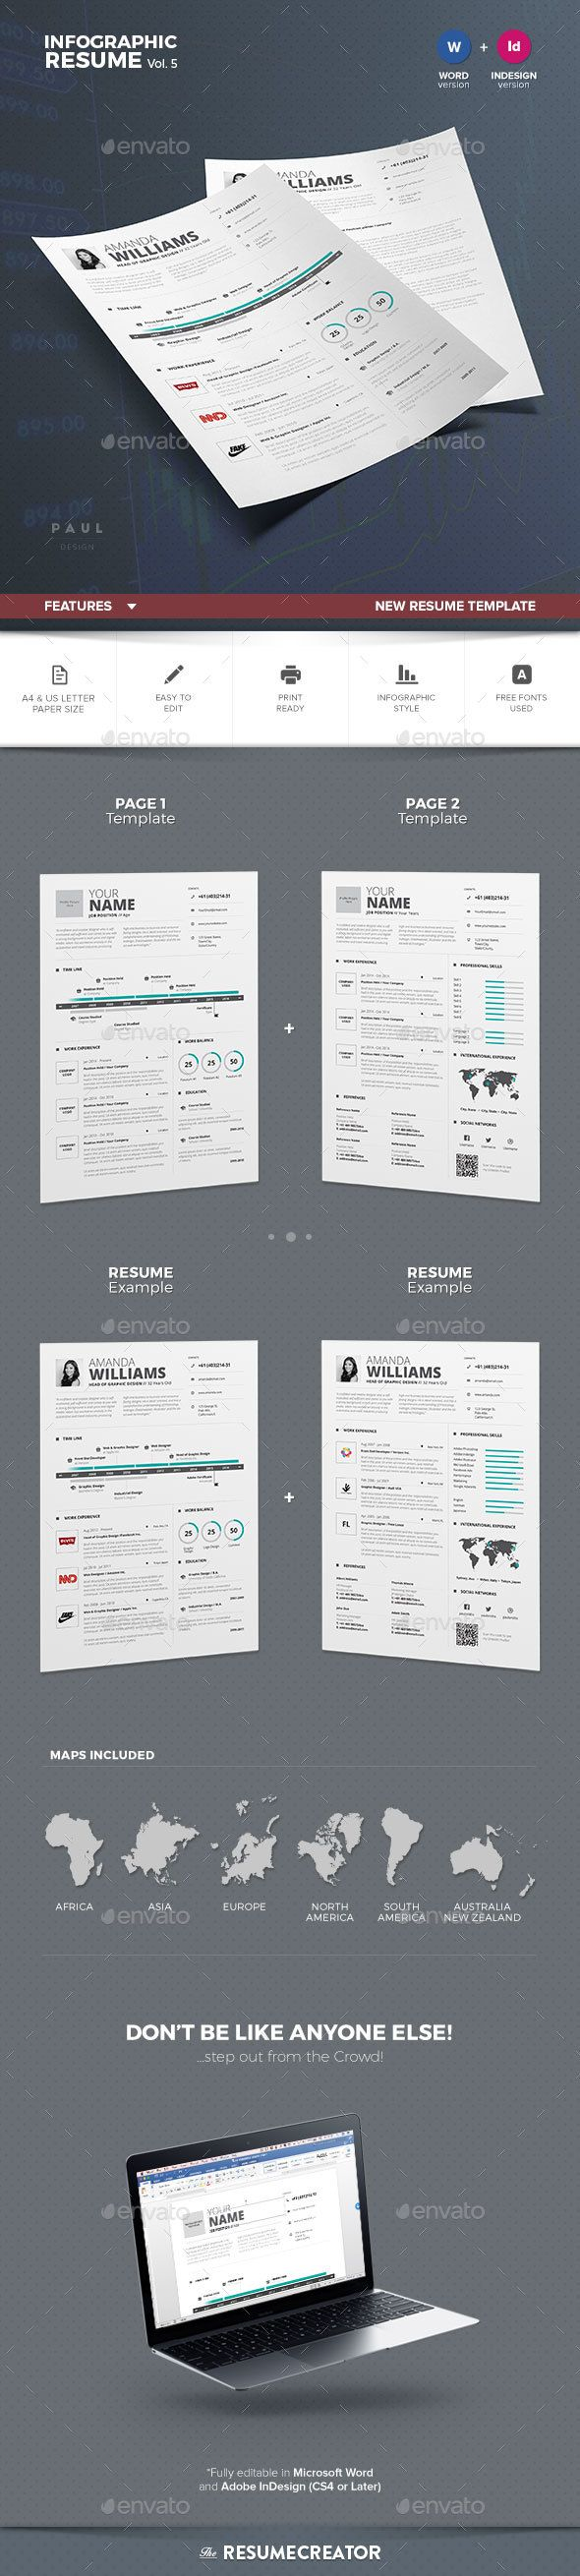 margins for resume%0A Infographic Resume   Cv Template MS Word  InDesign INDD